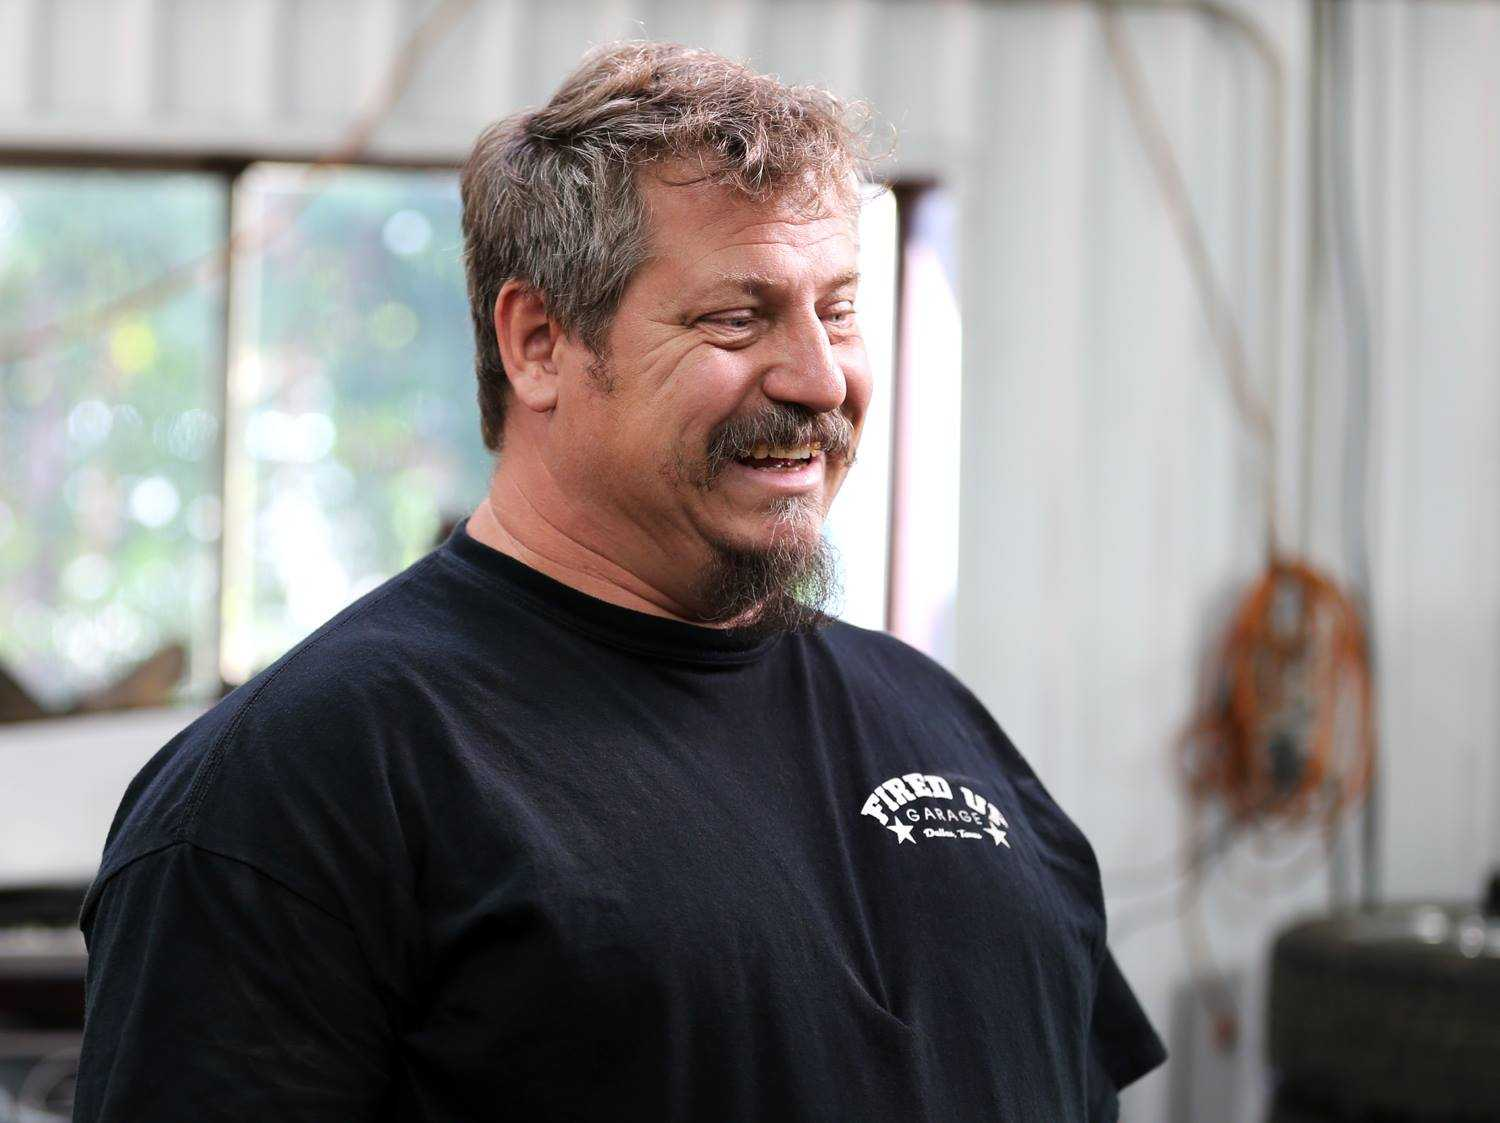 Misfit Garage's Tom Smith